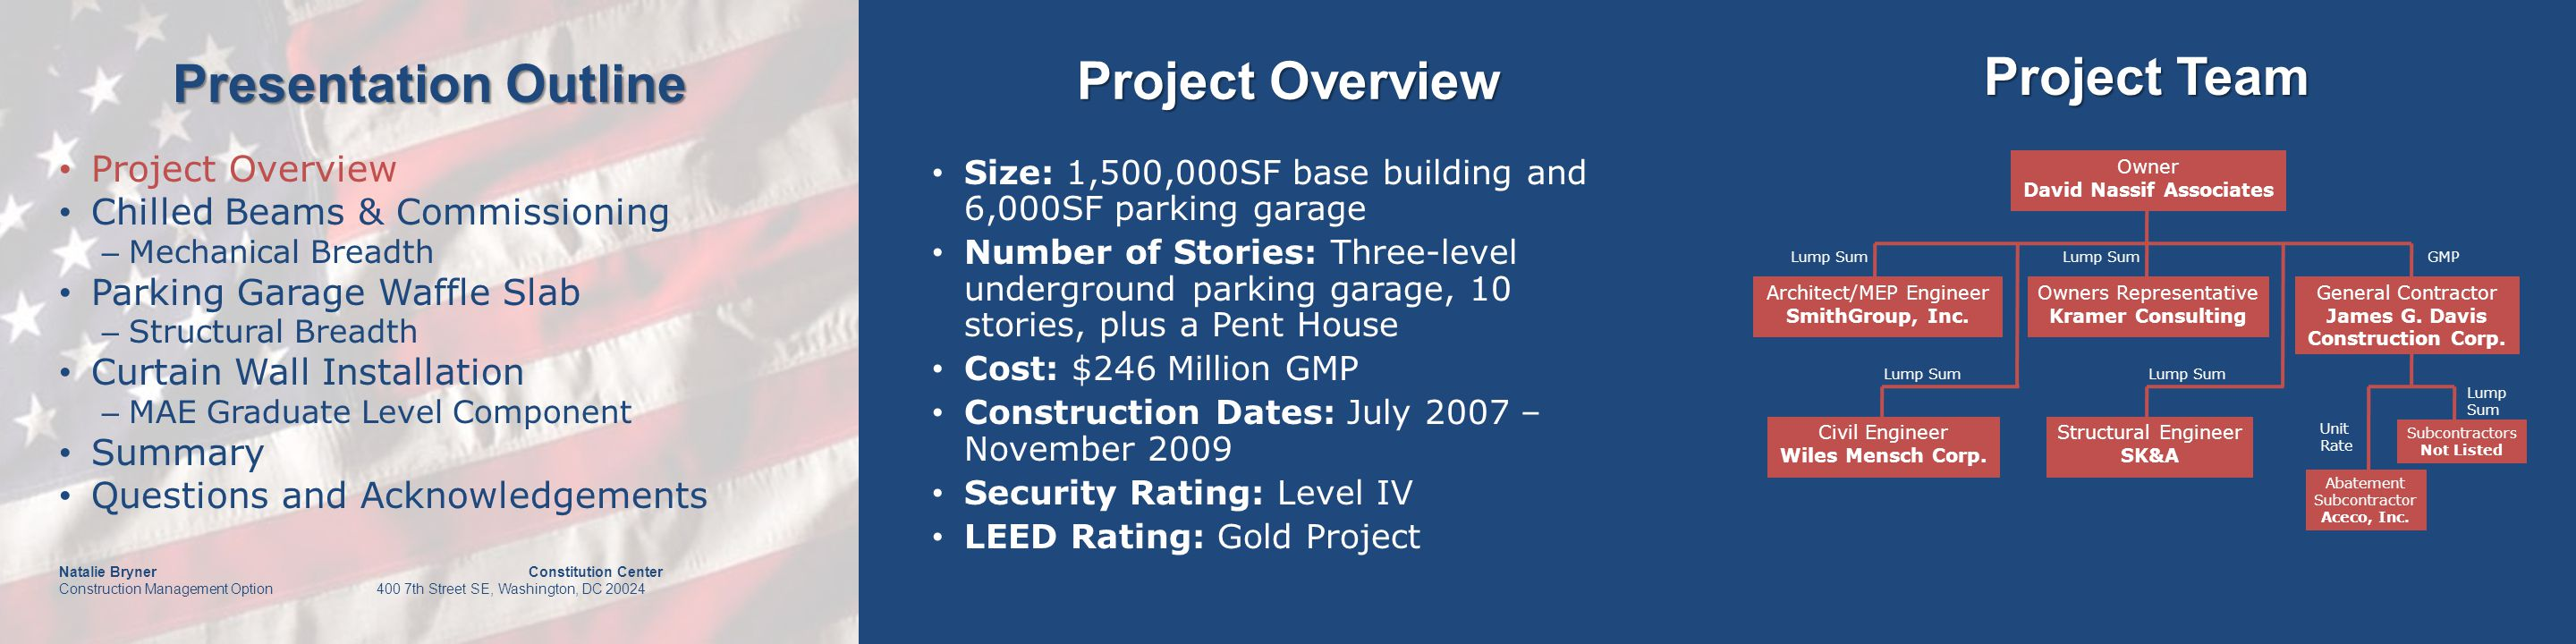 Presentation Outline Natalie Bryner Constitution Center Construction Management Option 400 7th Street SE, Washington, DC 20024 Productivity Project Overview Chilled Beams & Commissioning – Mechanical Breadth Parking Garage Waffle Slab – Structural Breadth Curtain Wall Installation – MAE Graduate Level Component Summary Questions and Acknowledgements